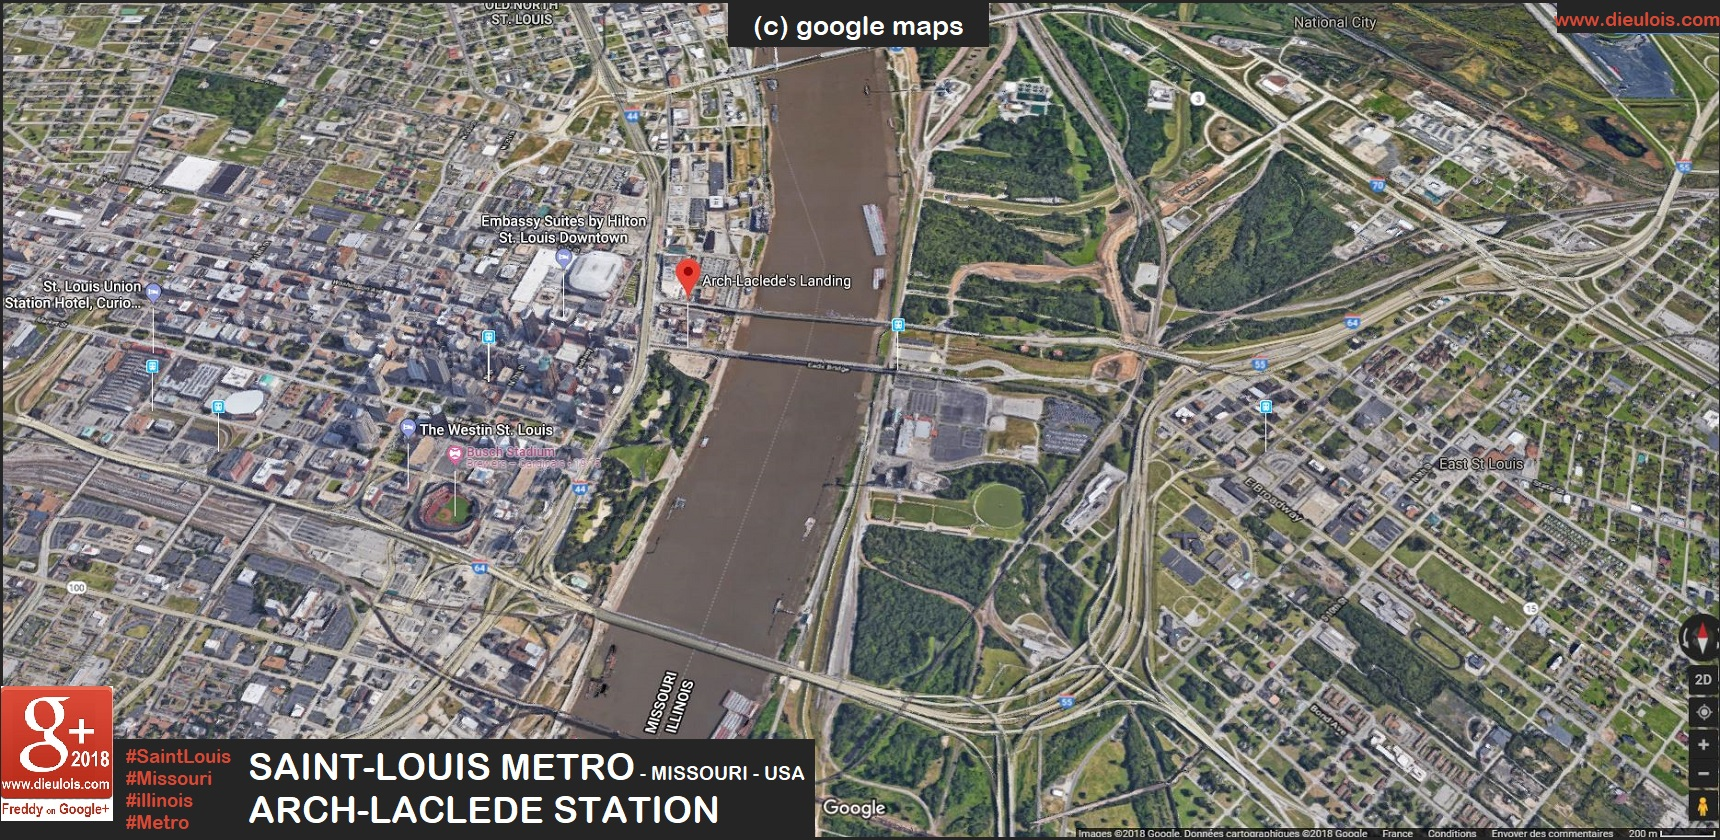 SaintLouis metro::PLAN & MAP & CARTE